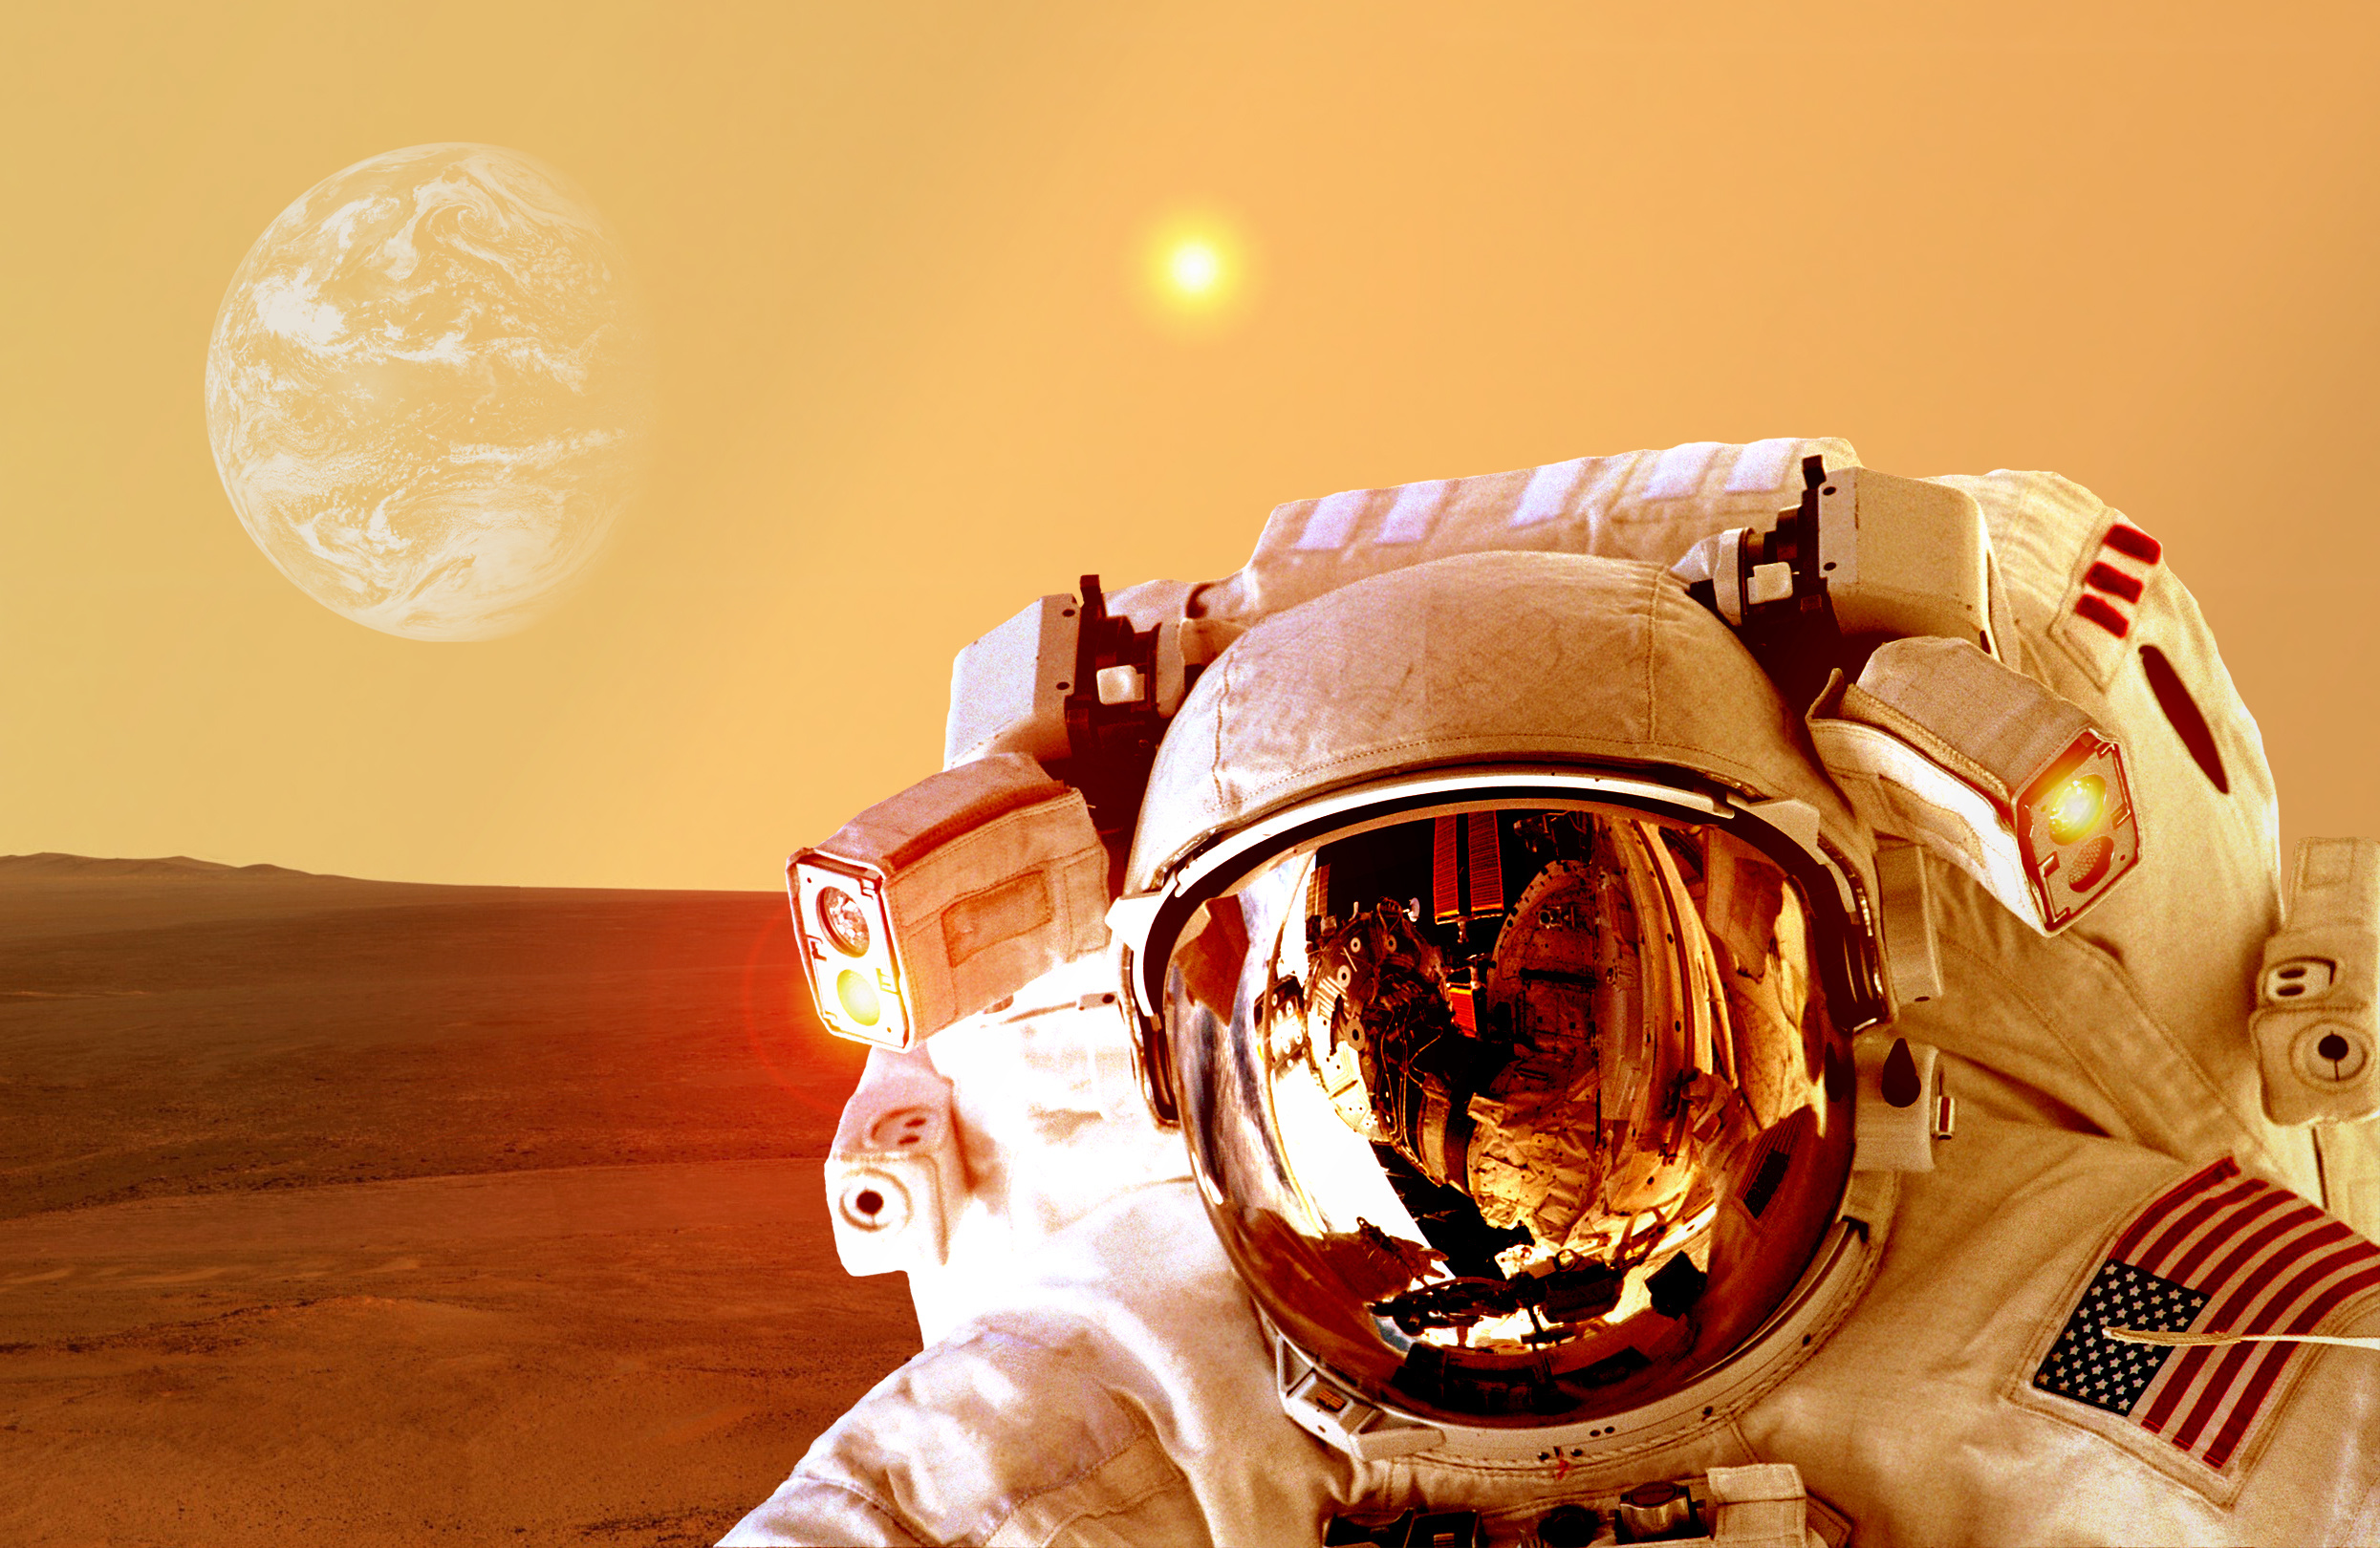 The Martian's Guide to Retirement Planning